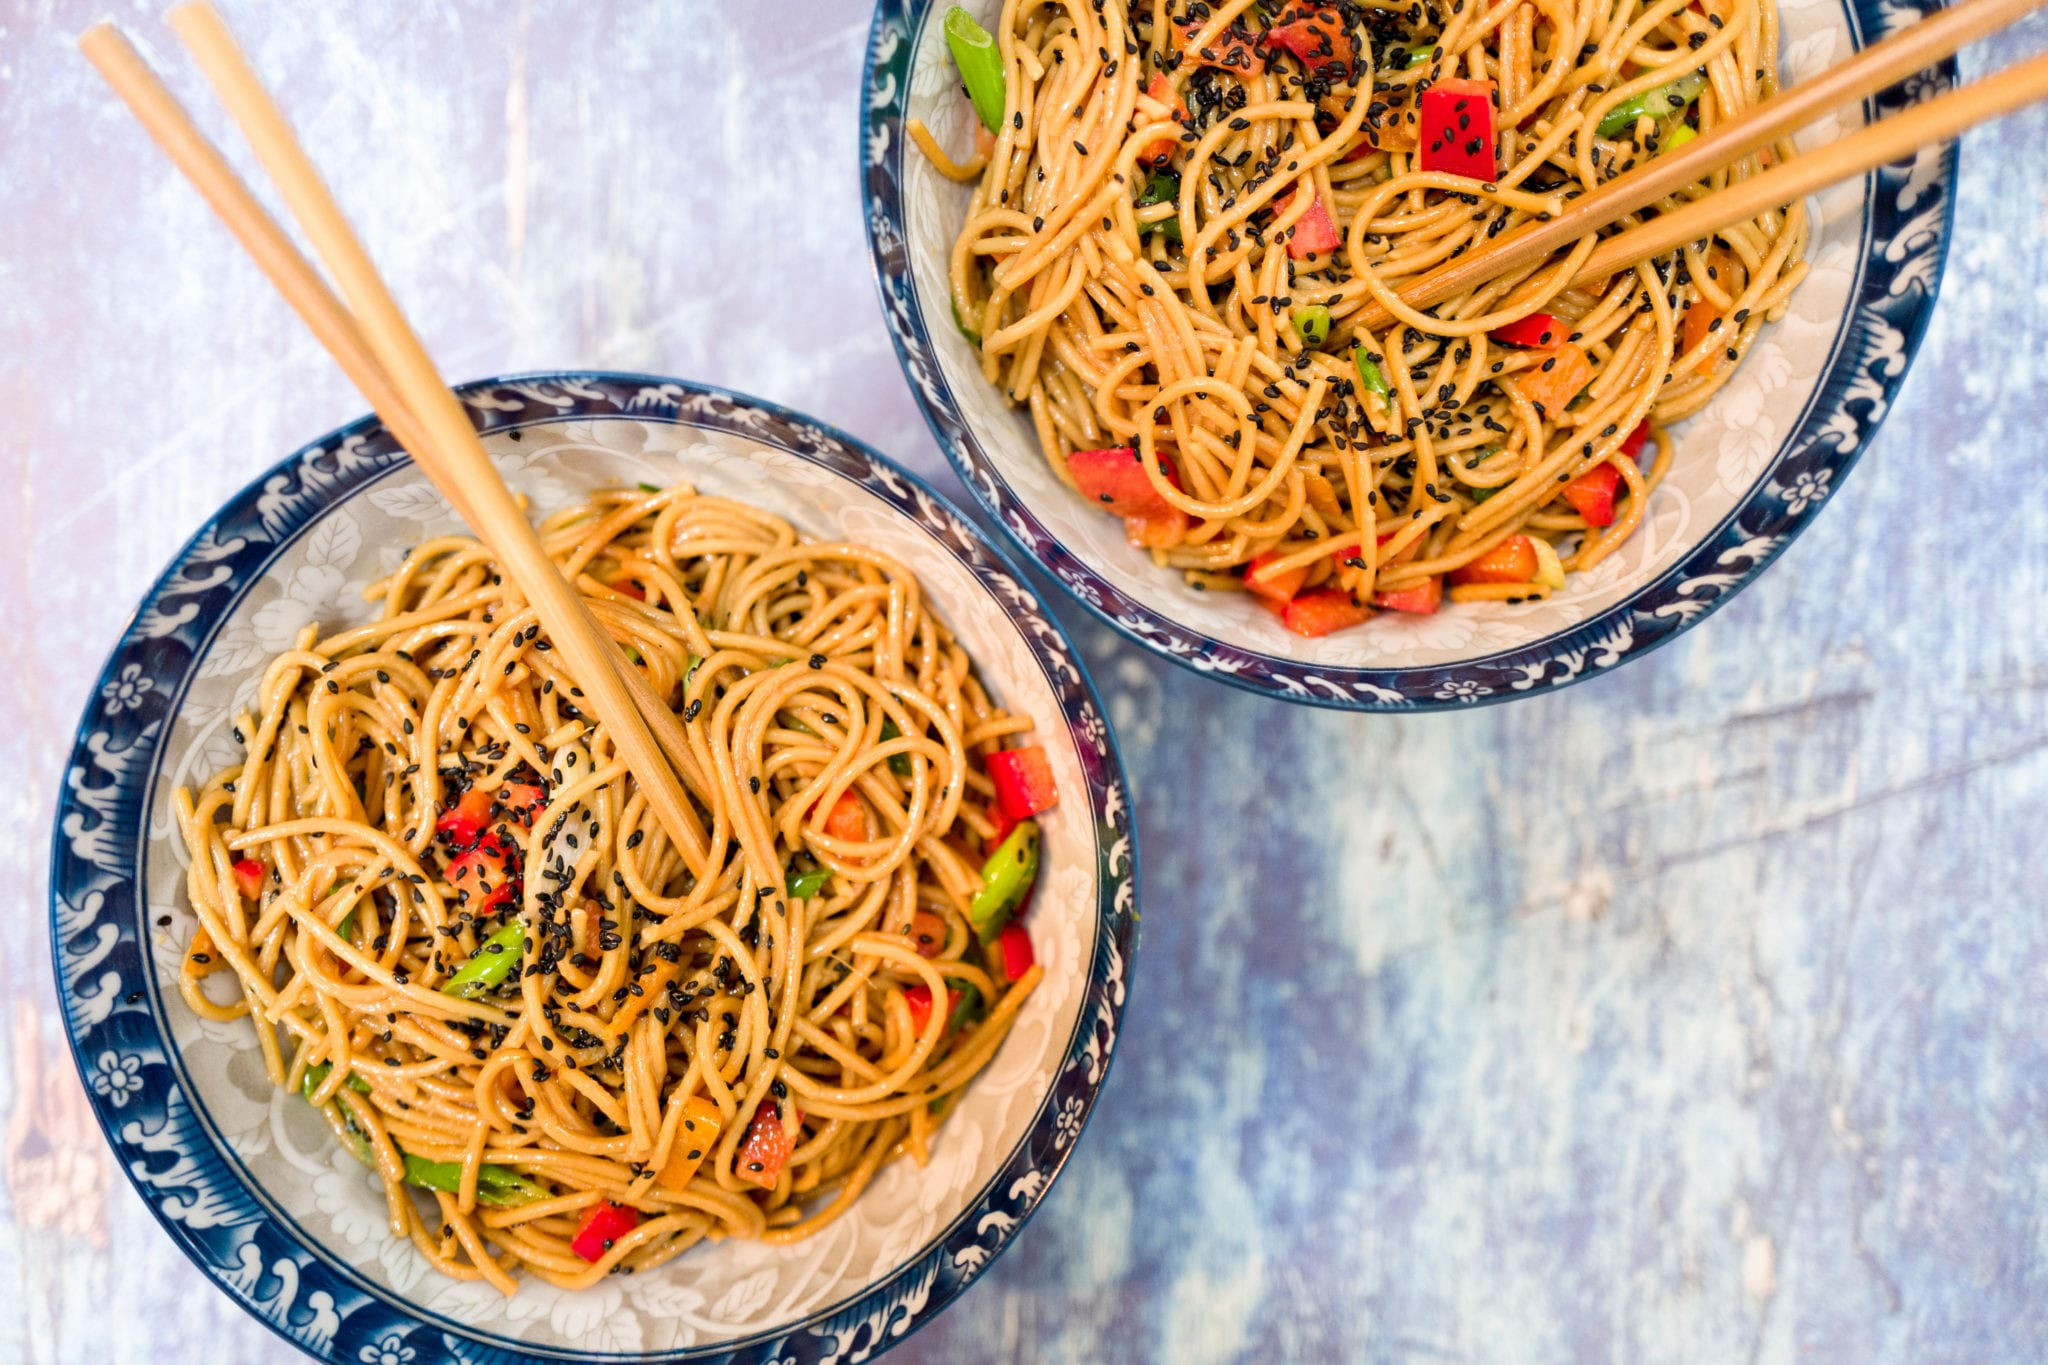 Longevity Noodles for the Lunar New Year